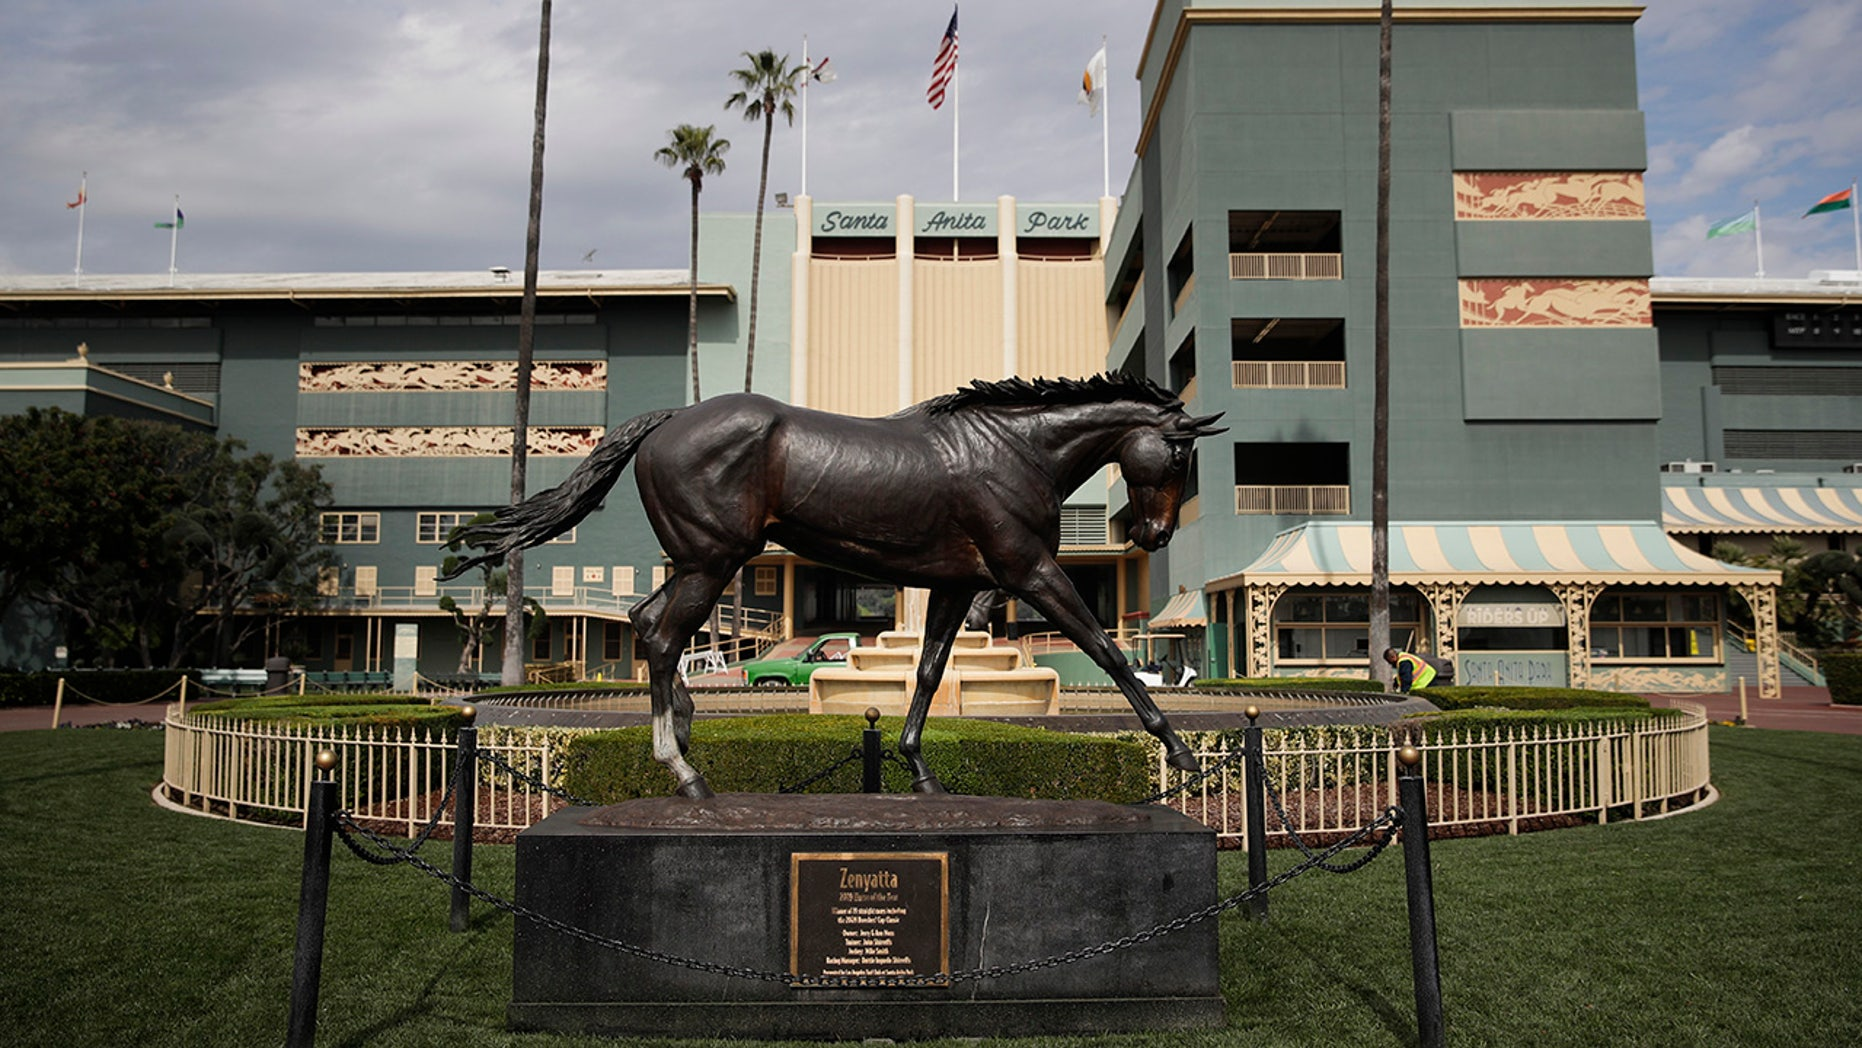 A statue of Zenyatta stands in the Paddock Gardens area in Santa Anita Park on March 5, 2019, in Arcadia, California (Associated Press)